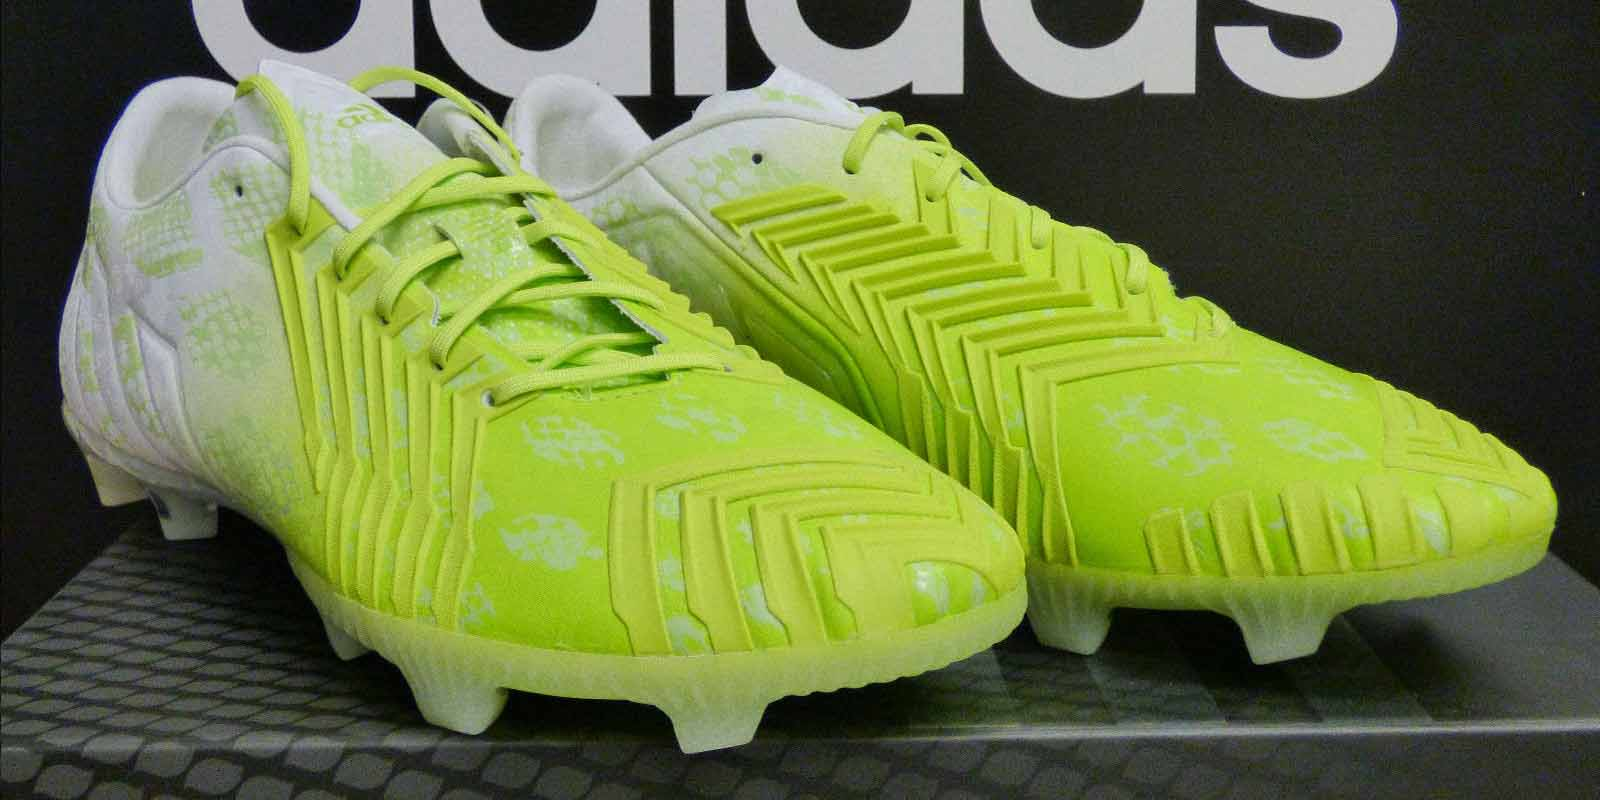 1de7a44d5178 2014 is the year of the Adidas Predator Football Boot with Adidas releasing  several special editions of the famous silo. The most popular special Adidas  ...